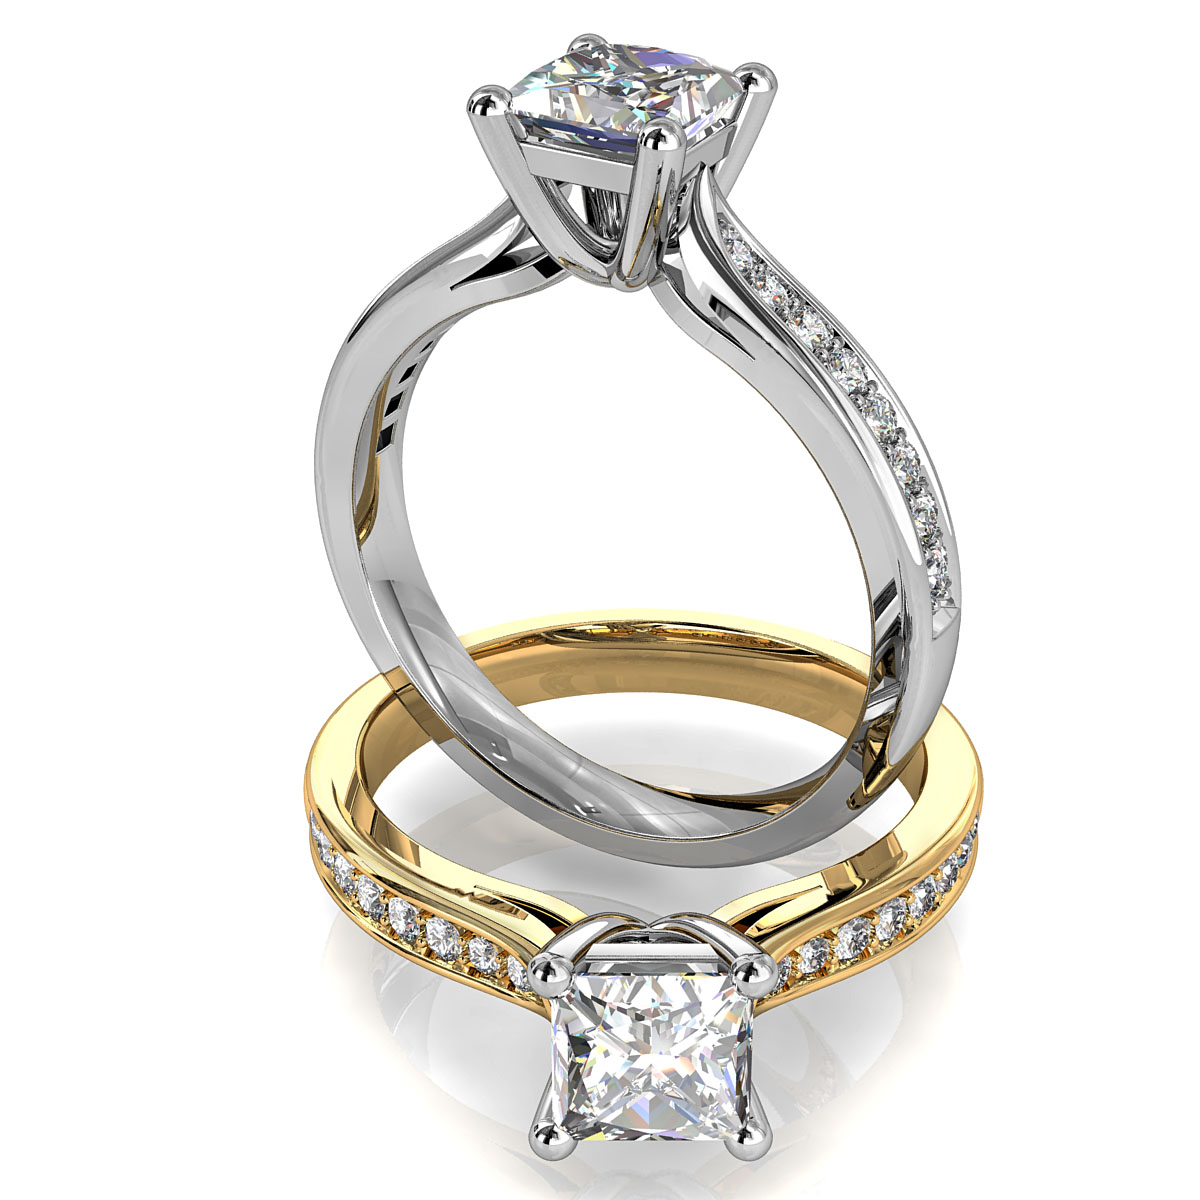 Princess Cut Solitaire Diamond Engagement Ring, 4 Claw Set on a Tapered Bead Set Band with Side Support Bar.